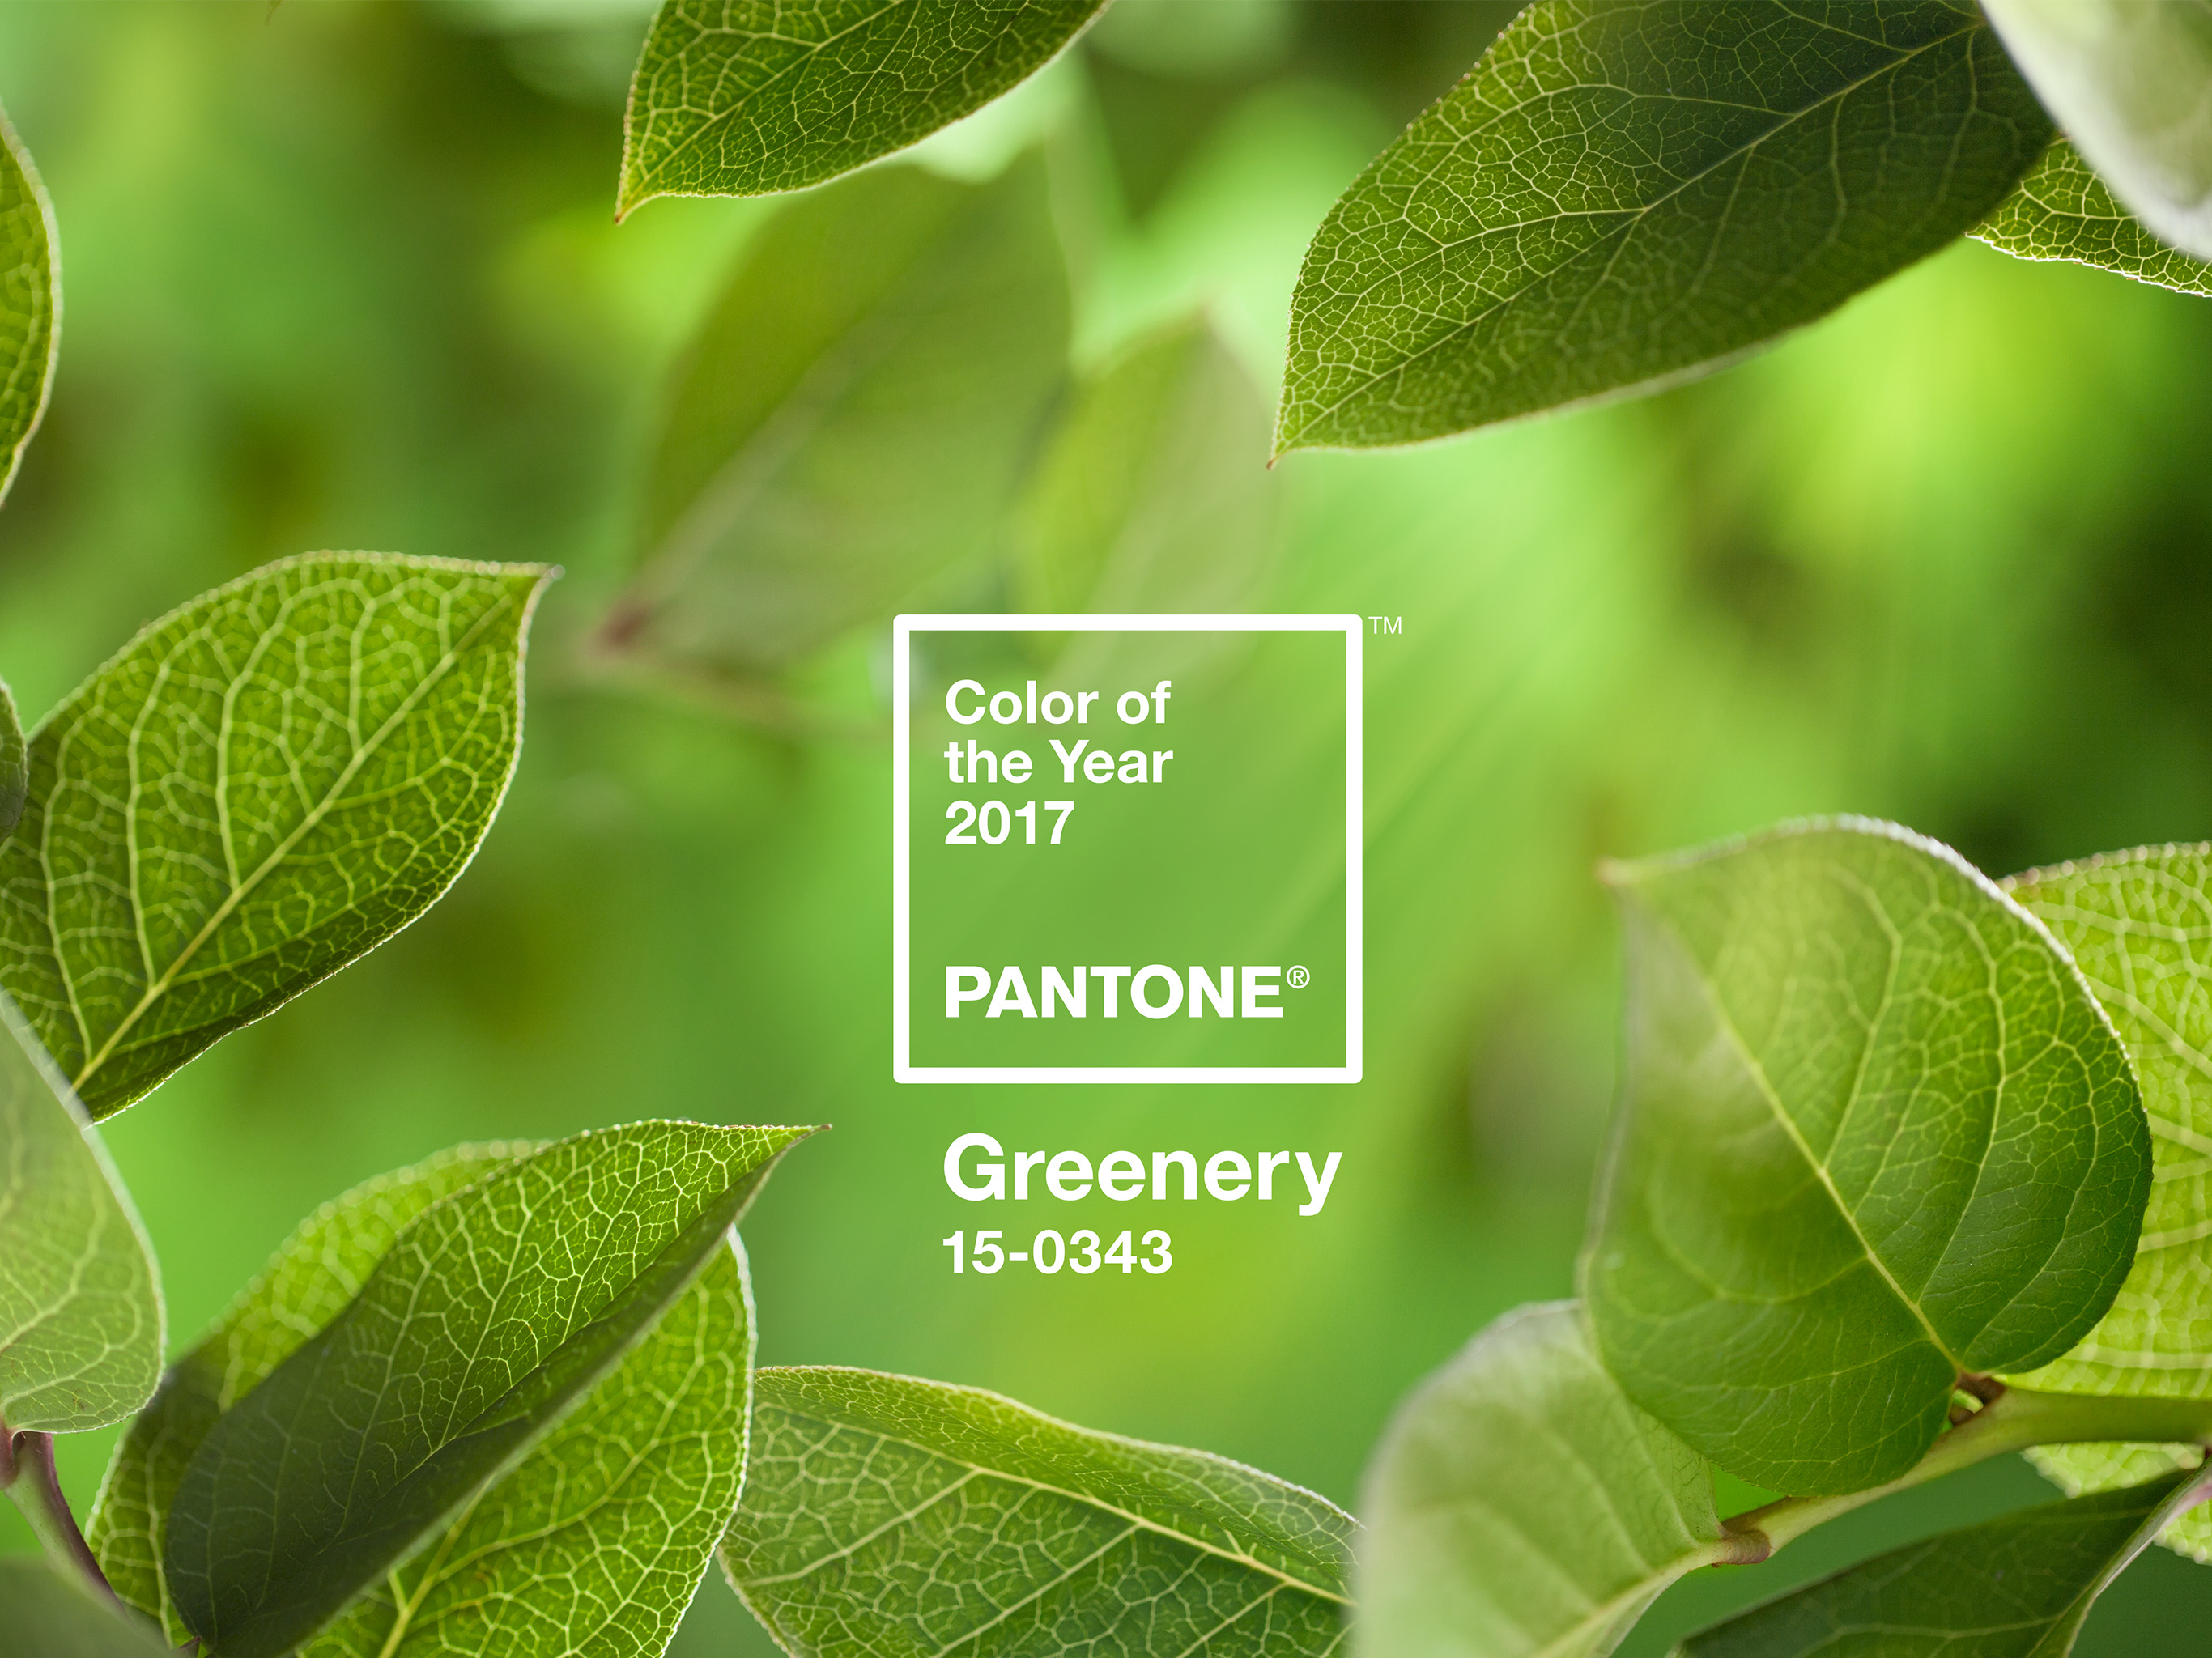 PANTONE-Color-of-the-Year-2017-Greenery-15-0343-leaves-2732x2048